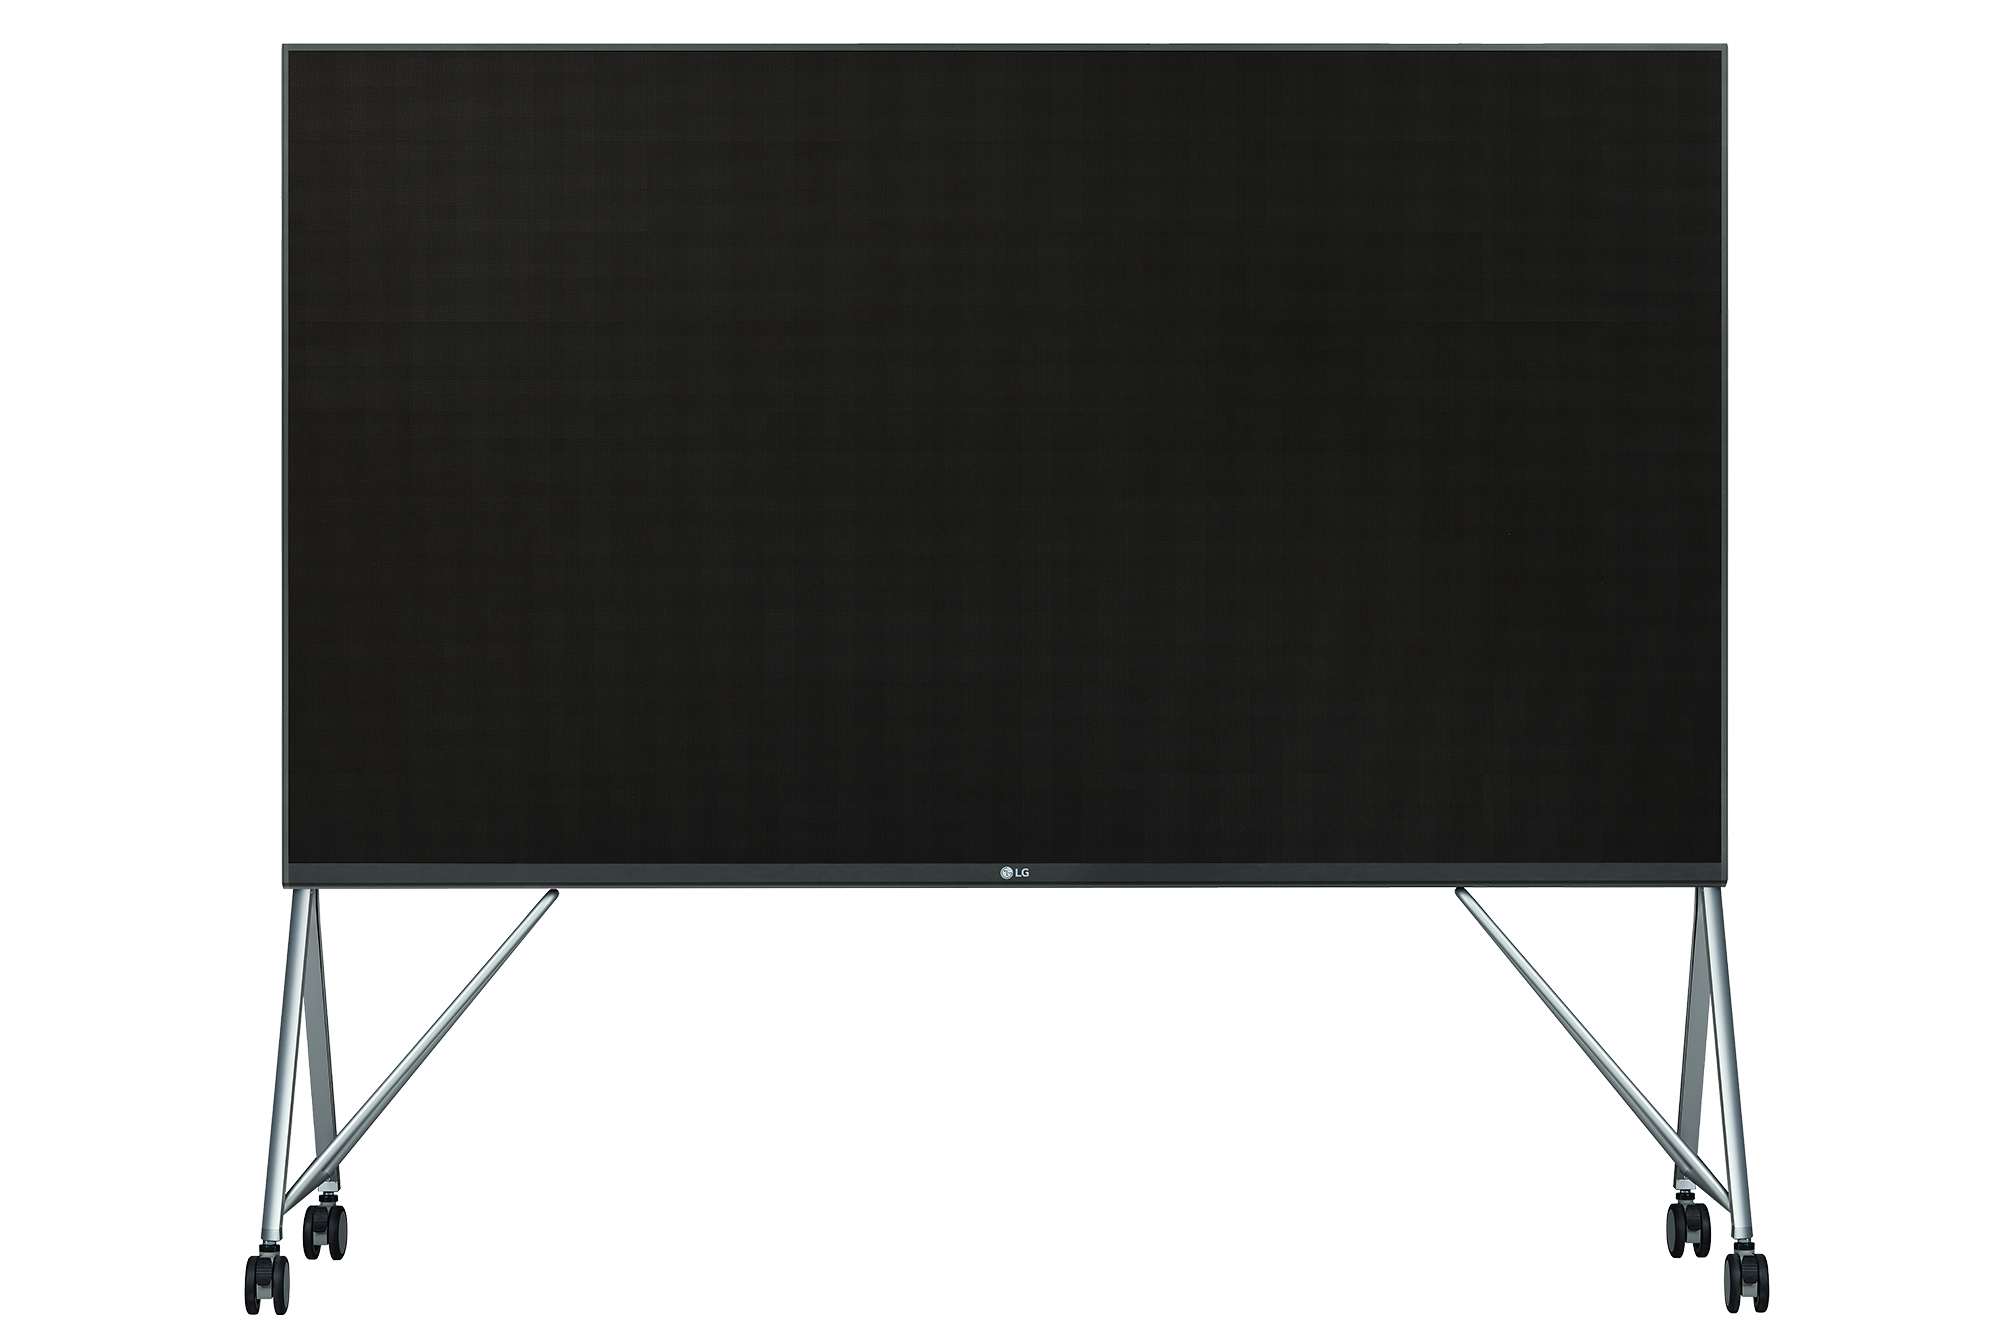 LG LG LED All-in-one LAA015F 3